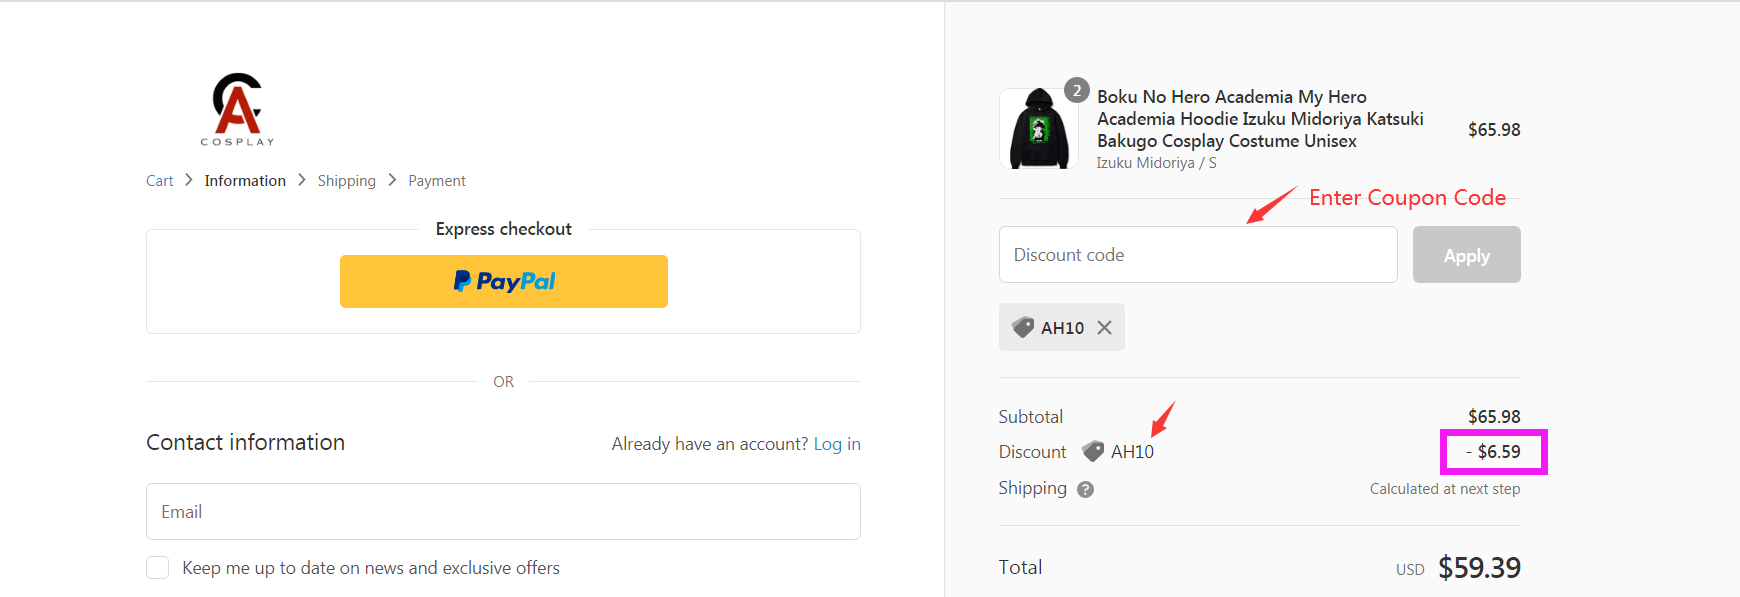 How to use ACcosplay Coupon Code?